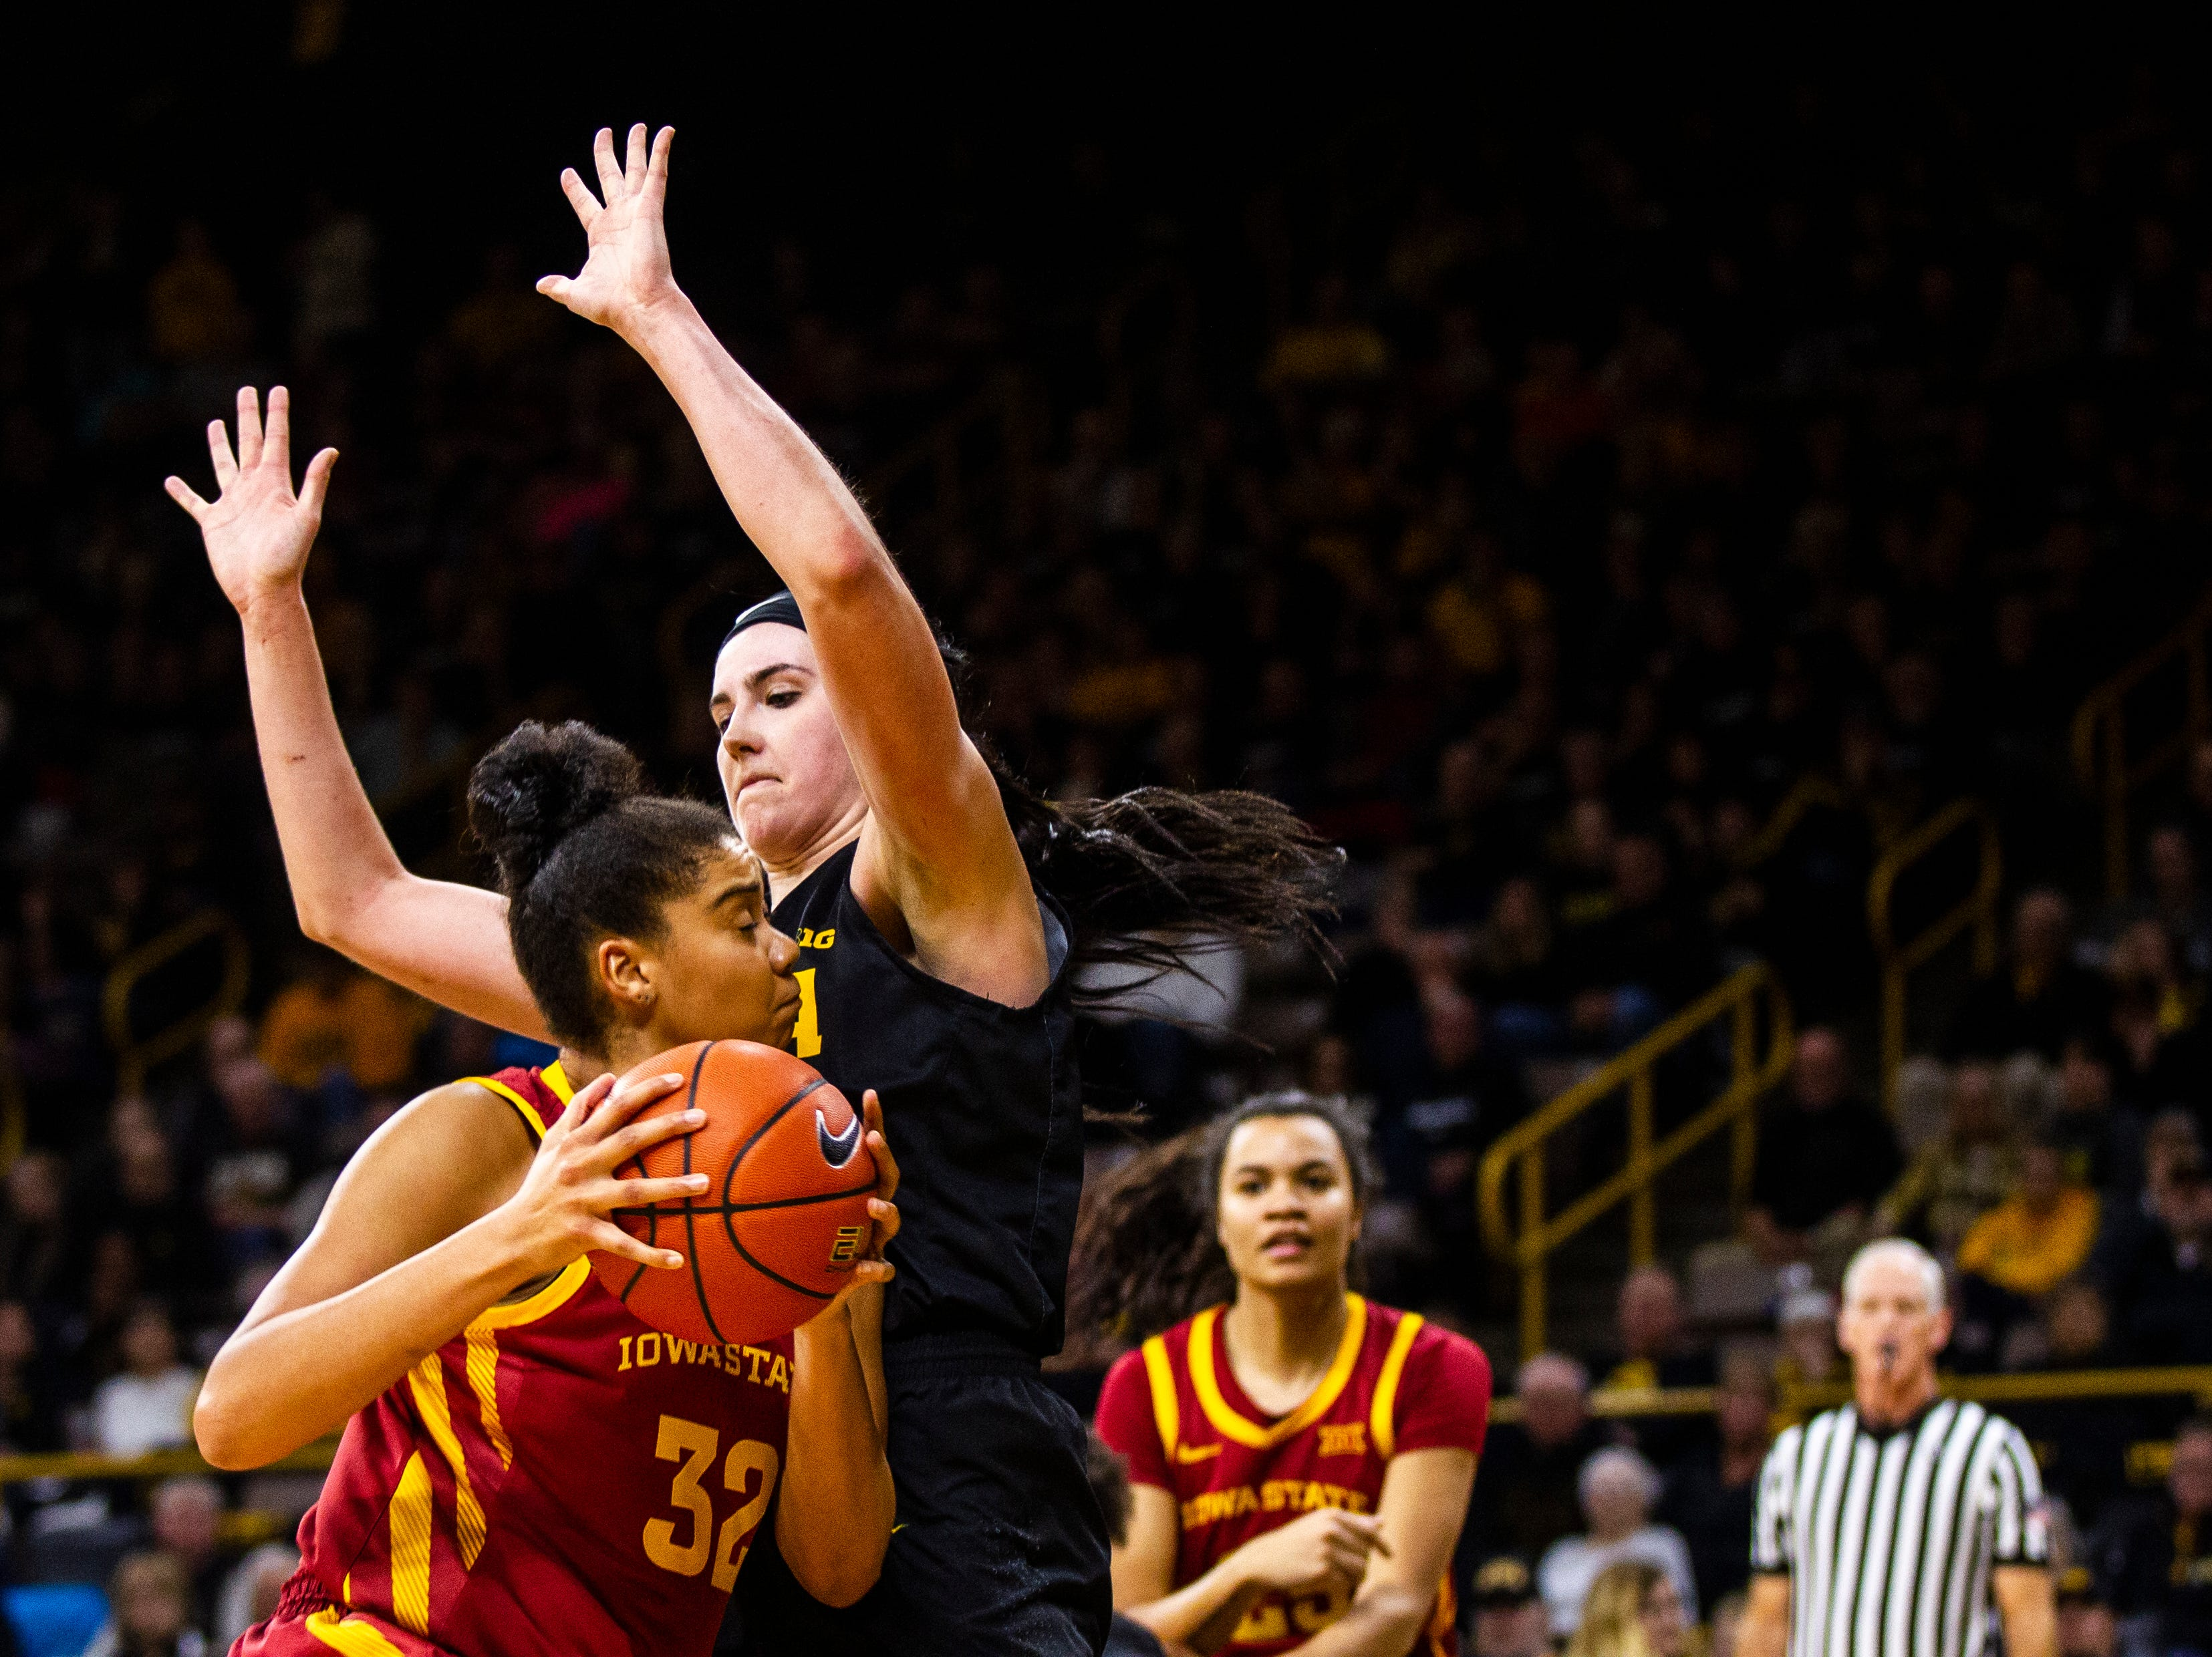 Iowa State forward Meredith Burkhall (32) gets defended by Iowa forward Megan Gustafson (10) in the paint during a Cy-Hawk series NCAA women's basketball game on Wednesday, Dec. 5, 2018, at Carver-Hawkeye Arena in Iowa City.